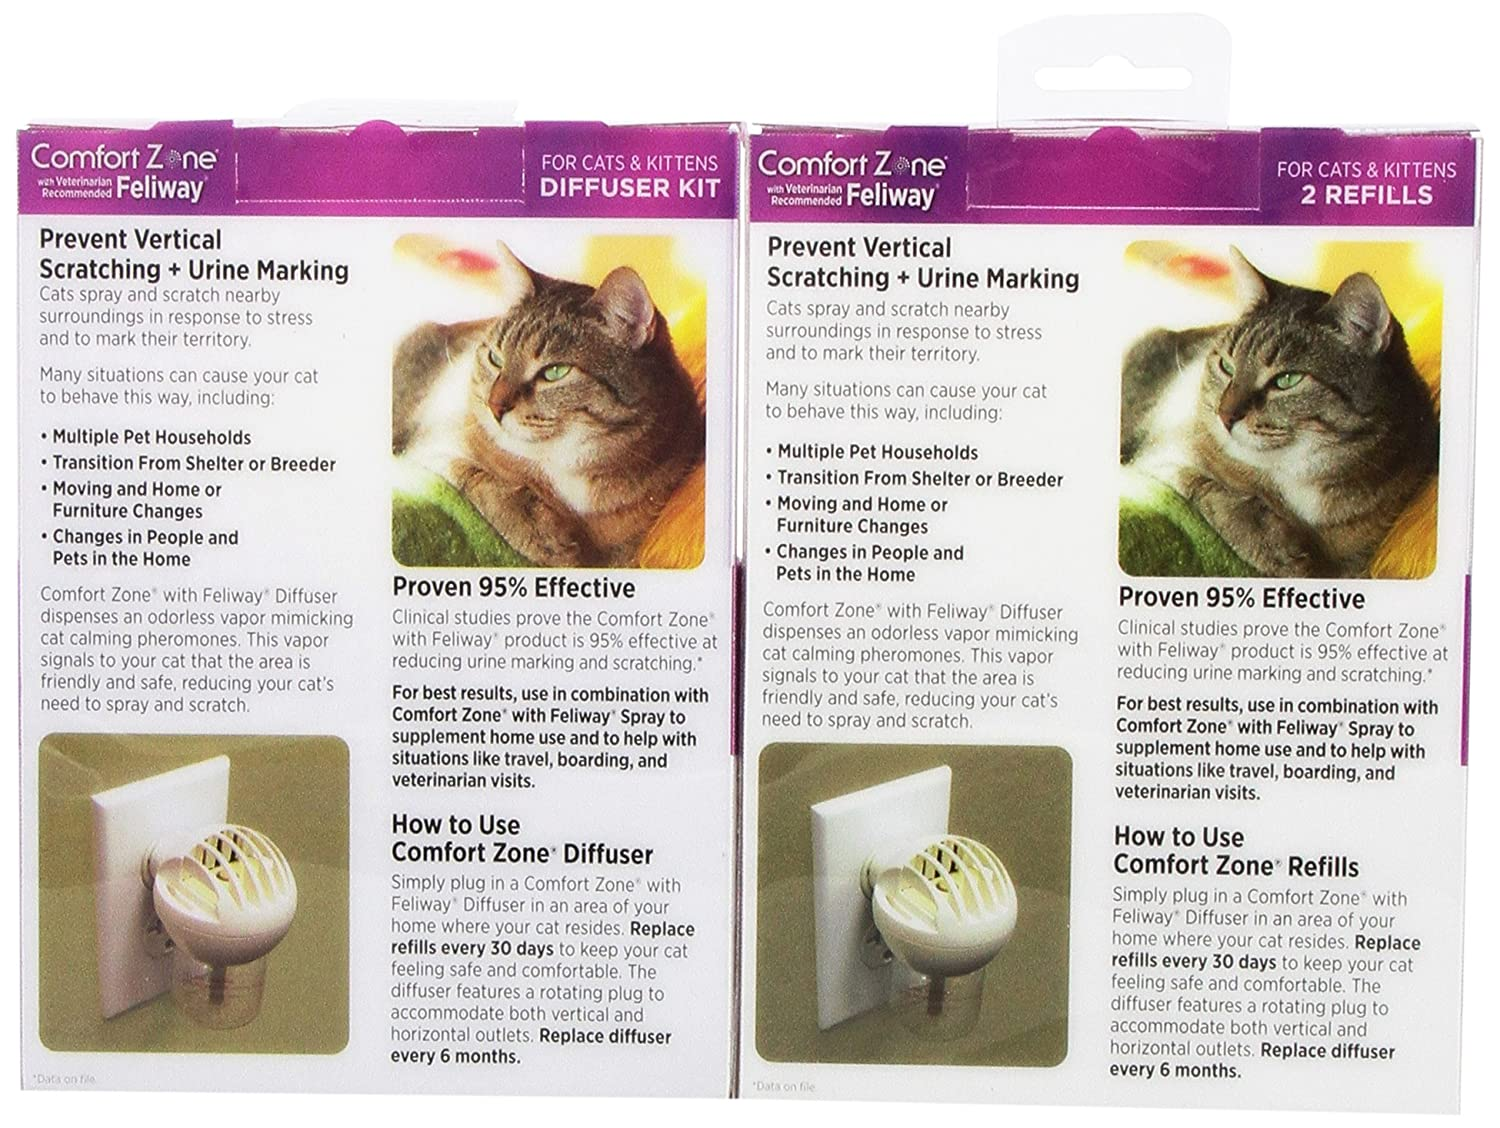 calming an product kit comfort diffuser mimicking or plug cats that in cat the review zone pheromones feliway on and by are products for work leave soothing when release does comforter spots